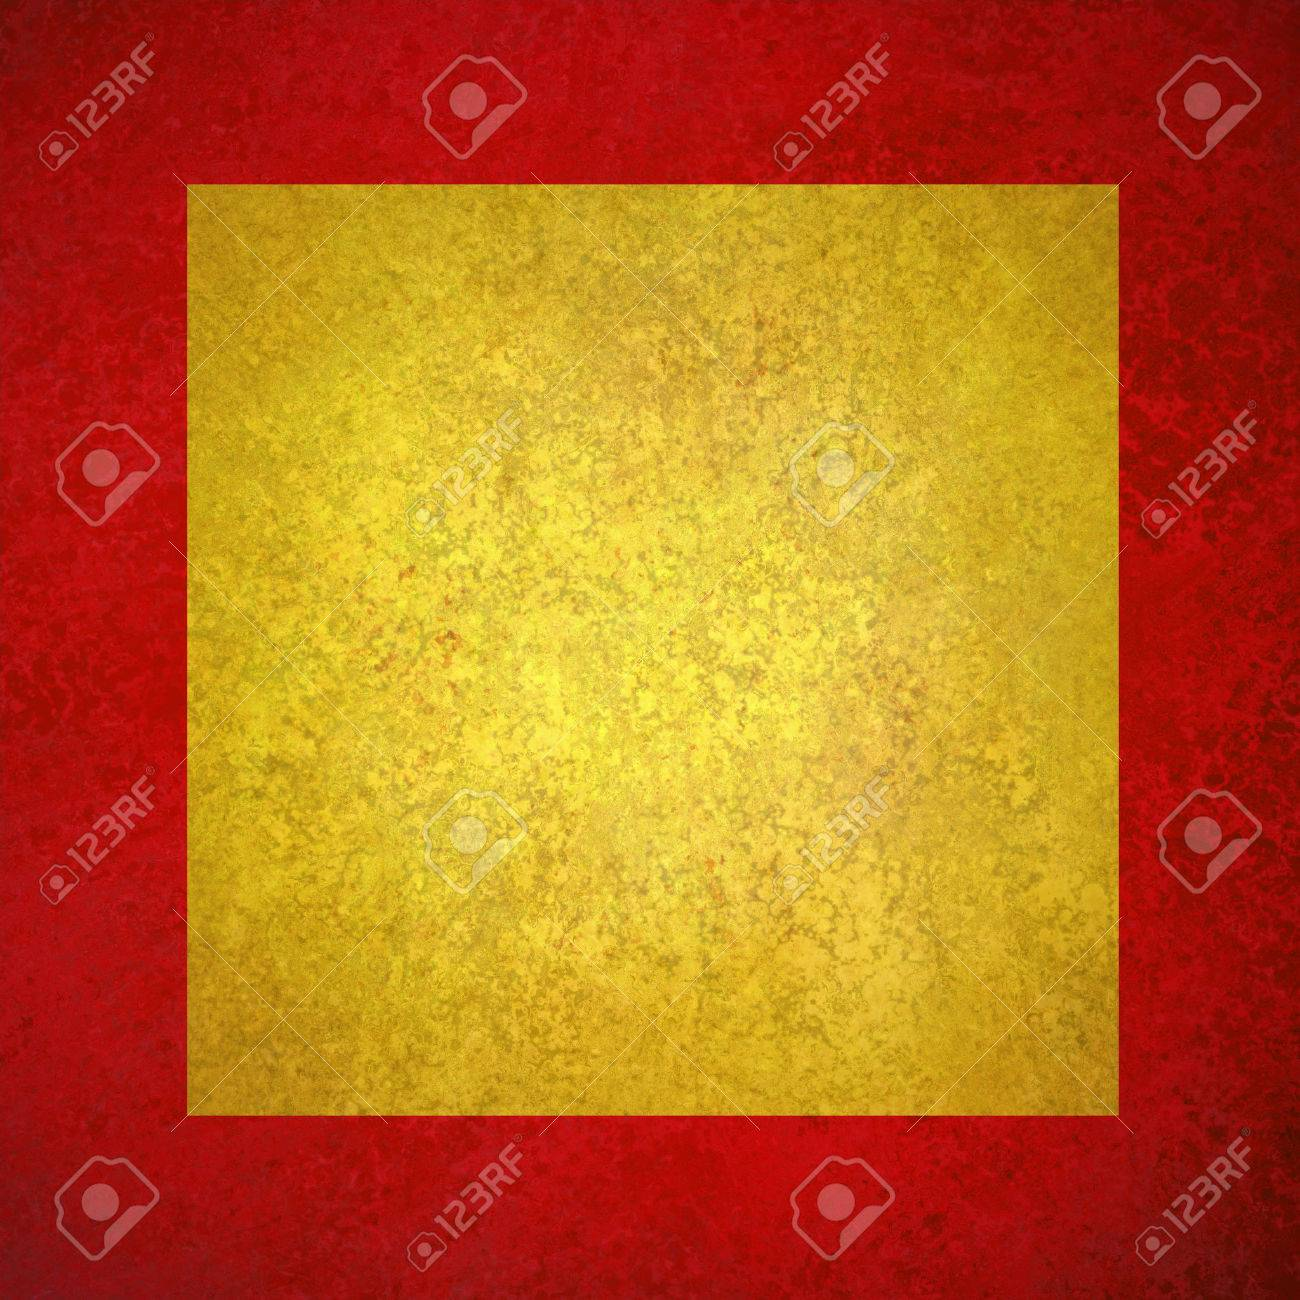 Elegant Red Gold Background Texture Paper, Faint Rustic Yellow ...